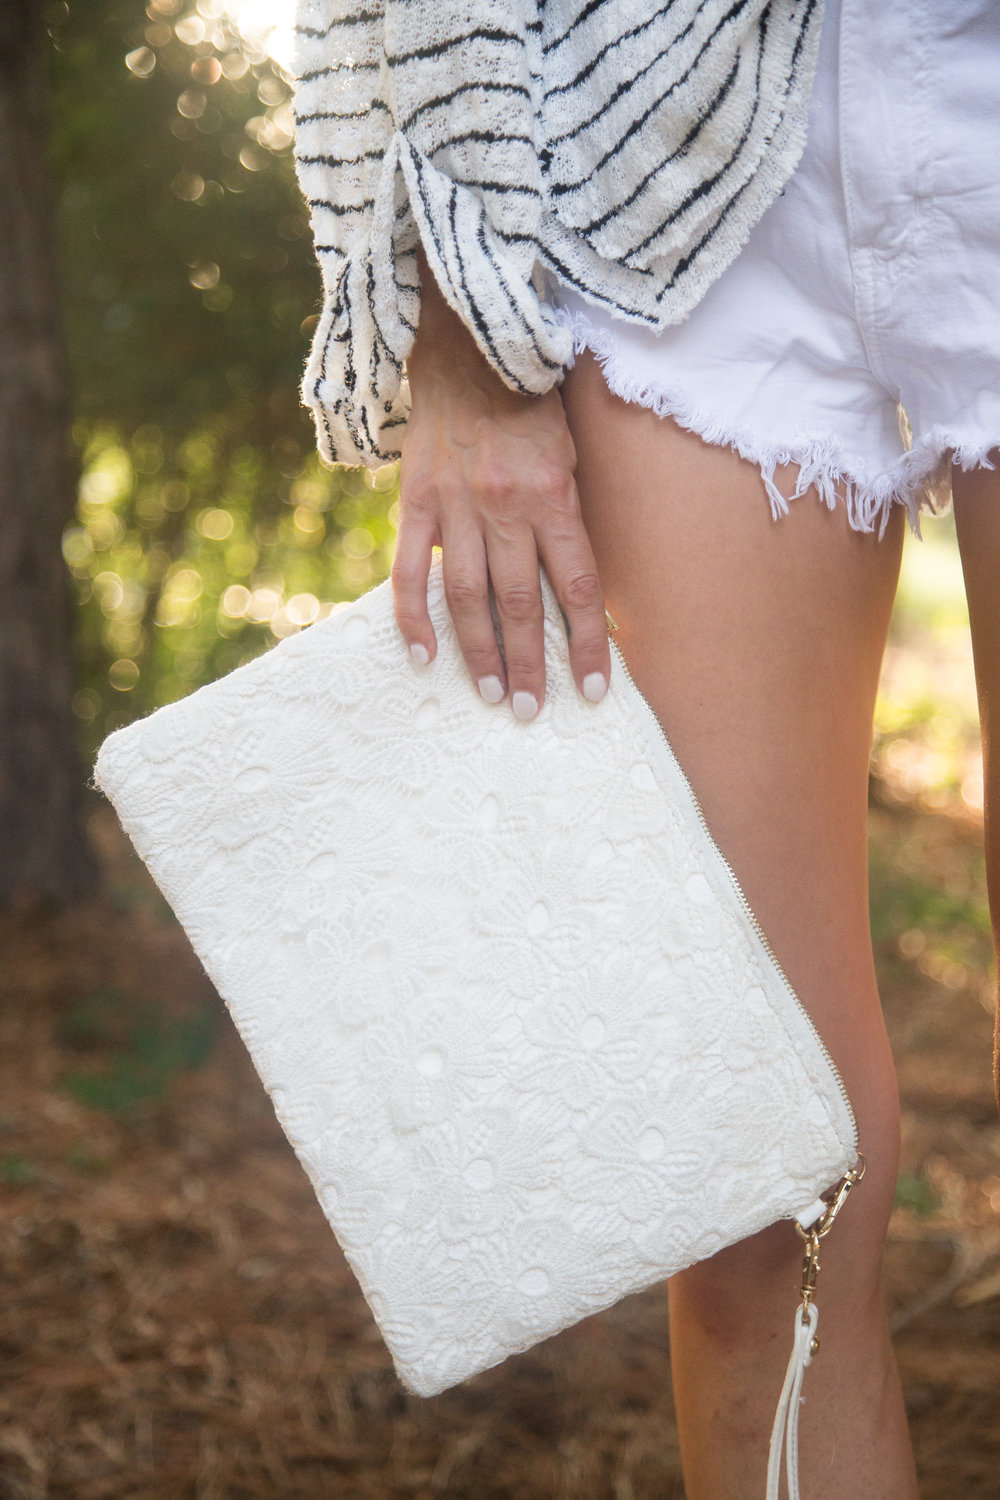 Just look at that cute sleeve detail!